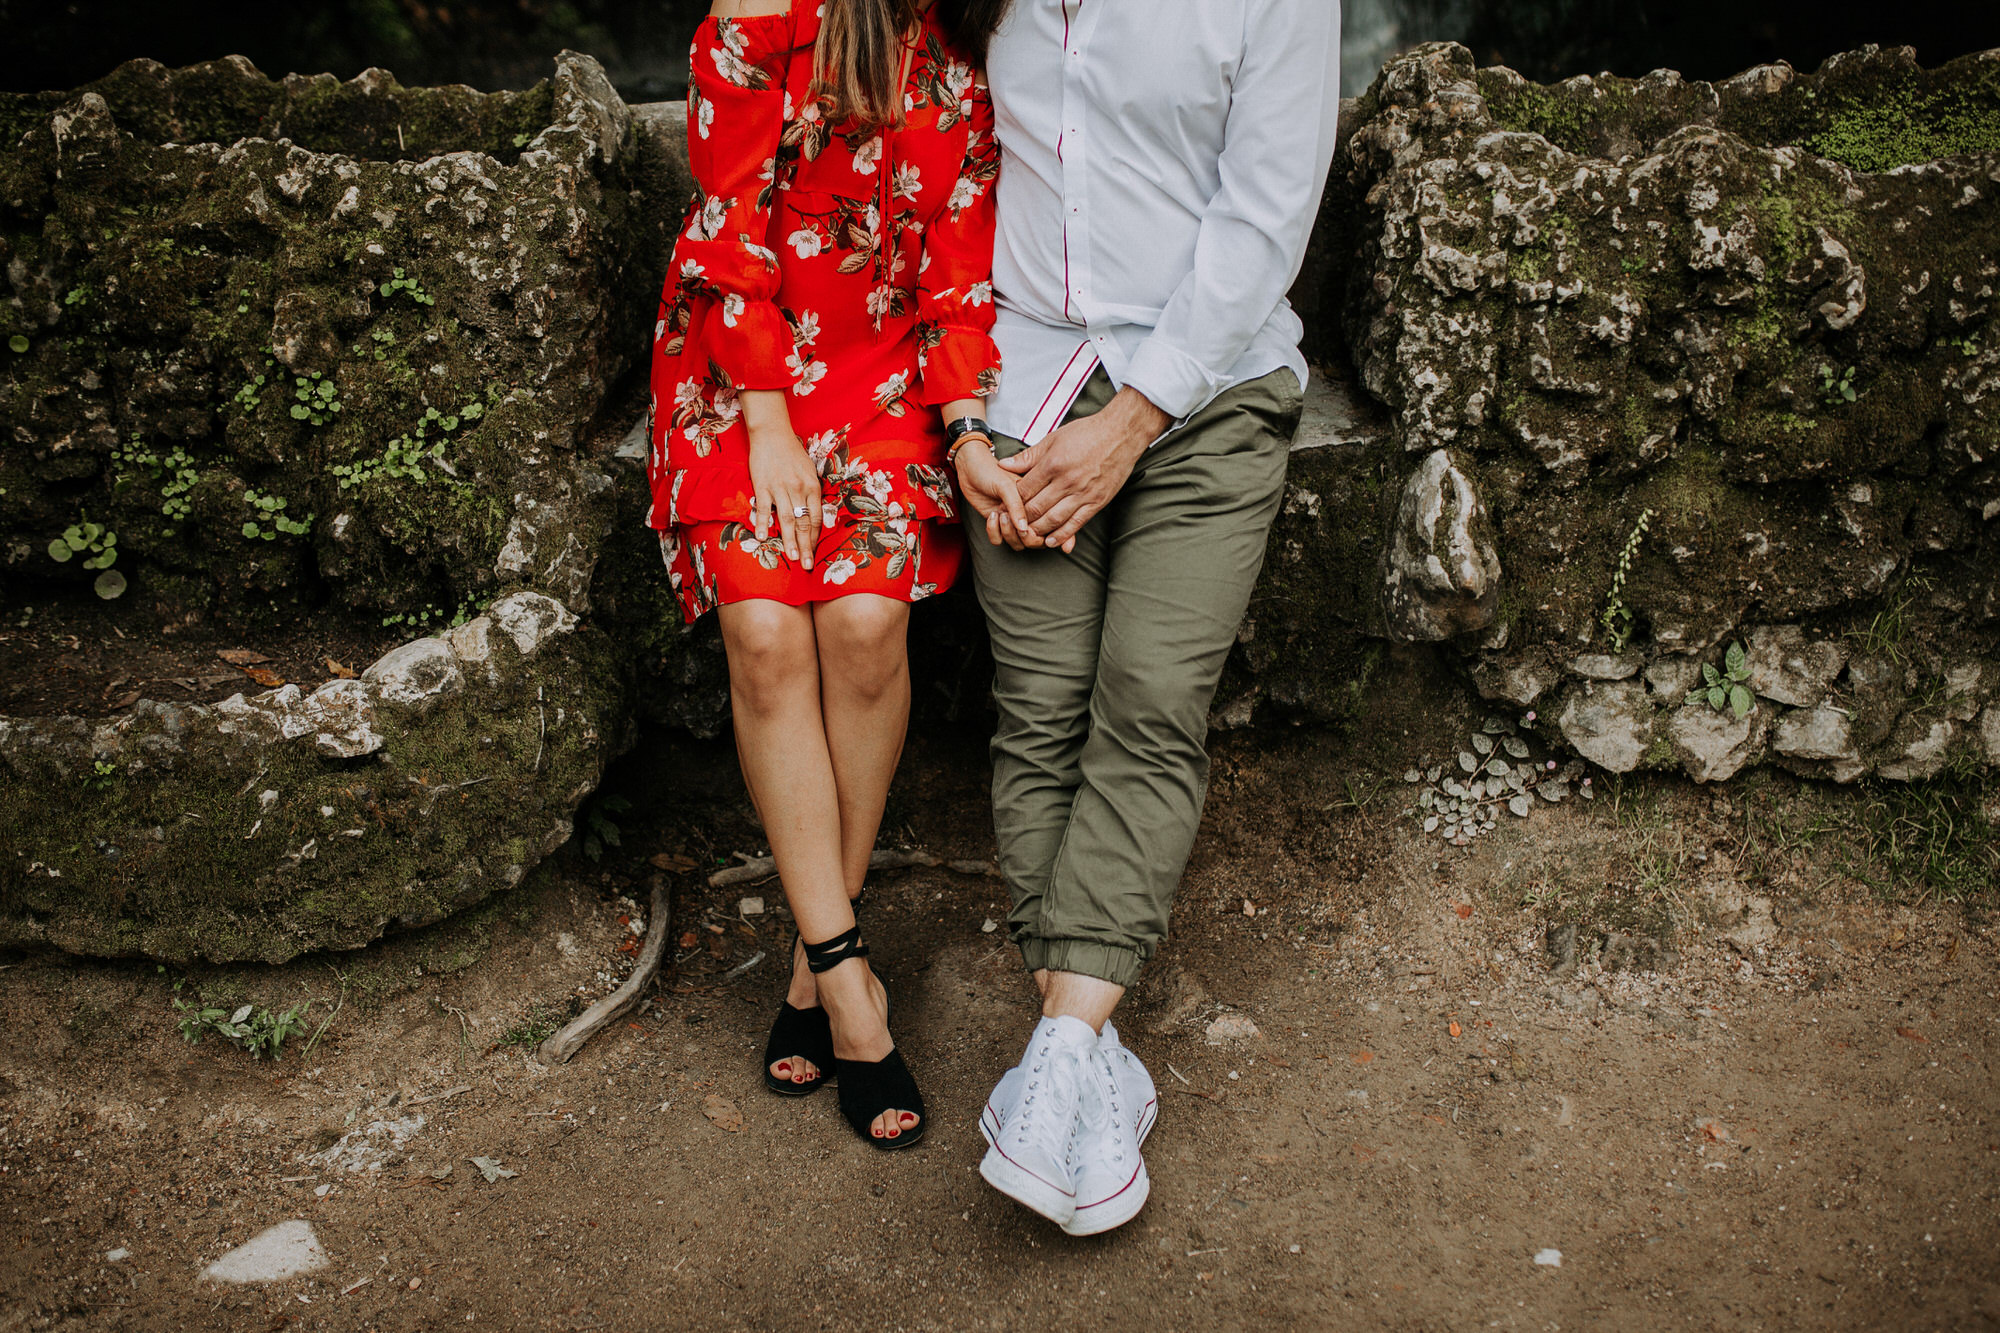 32-sessao-noivado-engagement-love-session-Sintra-lisboa-town-wedding-photography-photographer-natural-best-venue-planner-destination-filipe-santiago-fotografia-lifestyle-documentary